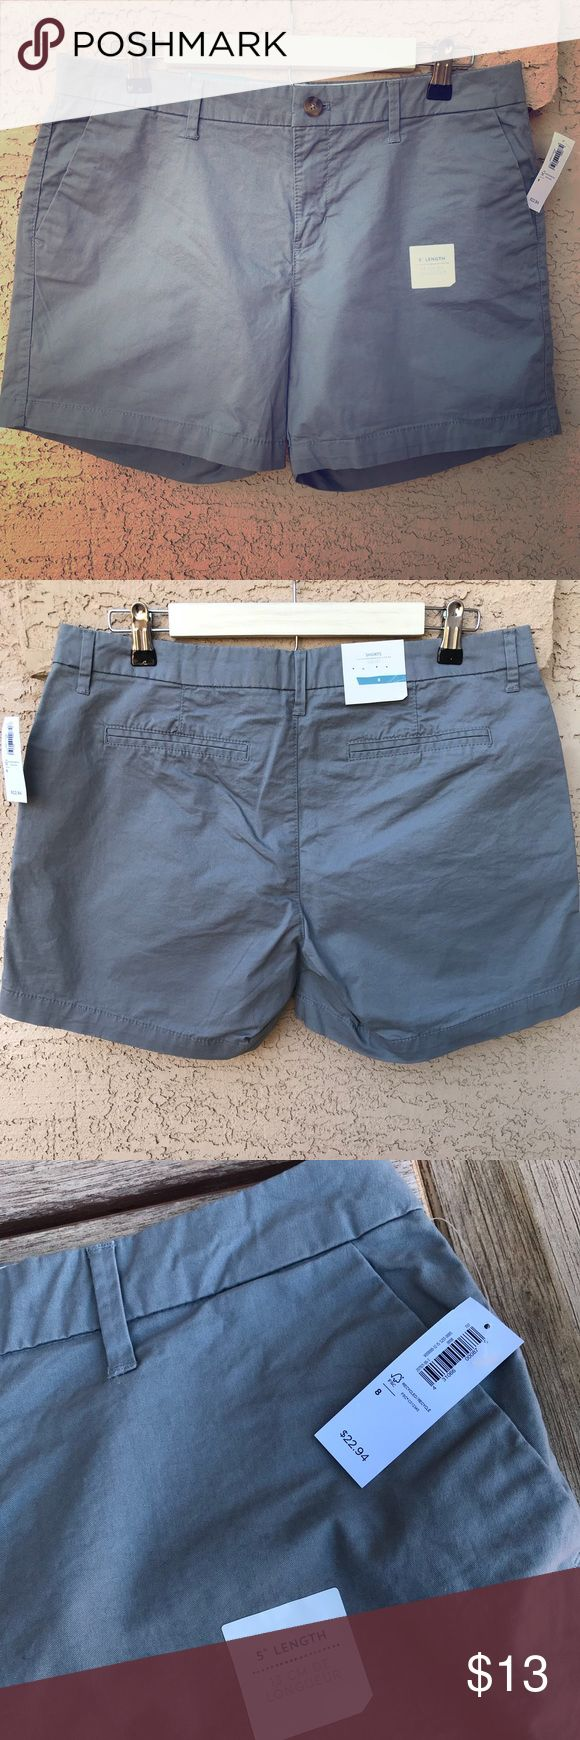 """🆕 Old Navy Solid Gray Women's Shorts NWT Size 8 Super cute solid gray Old Navy shorts, brand new with tags, size 8 with a 5"""" inseam. The overall width at the top opening is about 17"""" wide. Please inspect photos and message with questions! Thanks for looking.  Old Navy Solid Gray Shorts NWT Size 8  © 2018 YUNADEE STUDIO ALL RIGHTS RESERVED Old Navy Shorts"""